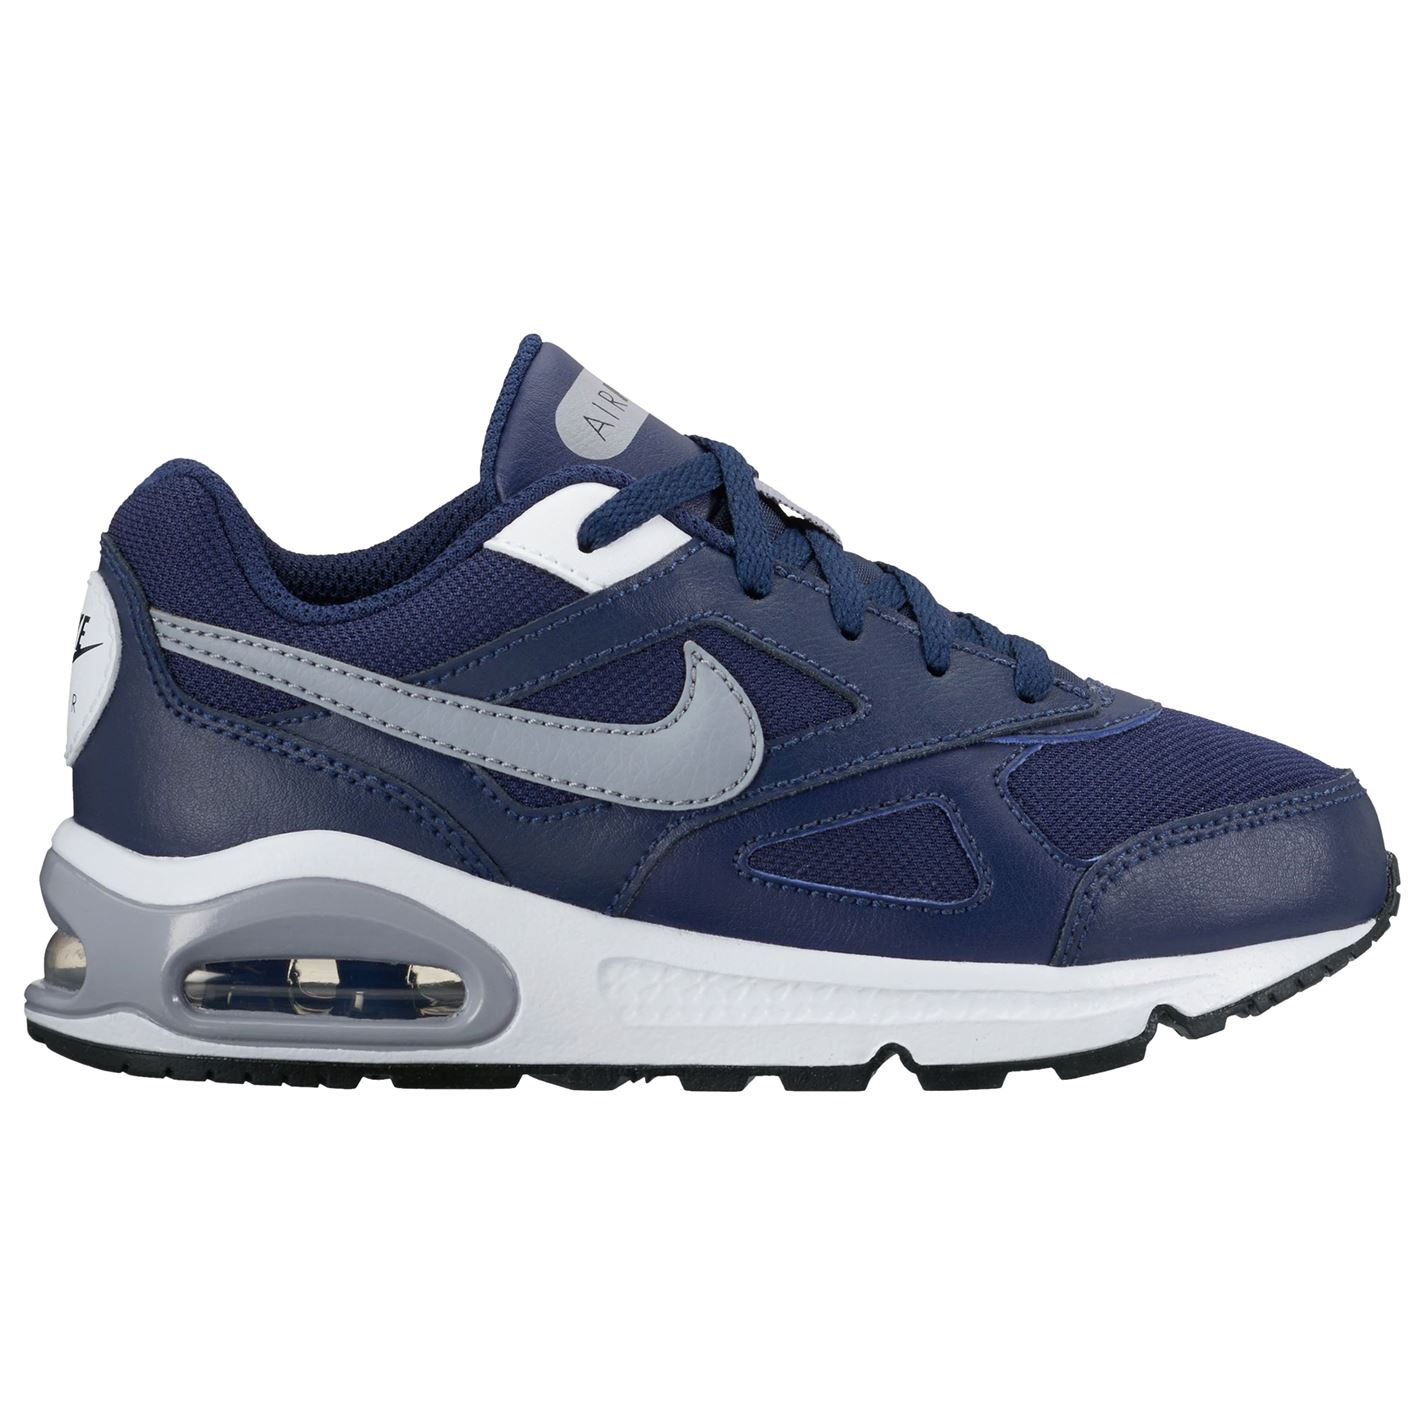 Nike Air Max Ivo Child Boys Trainers Navy/Grey